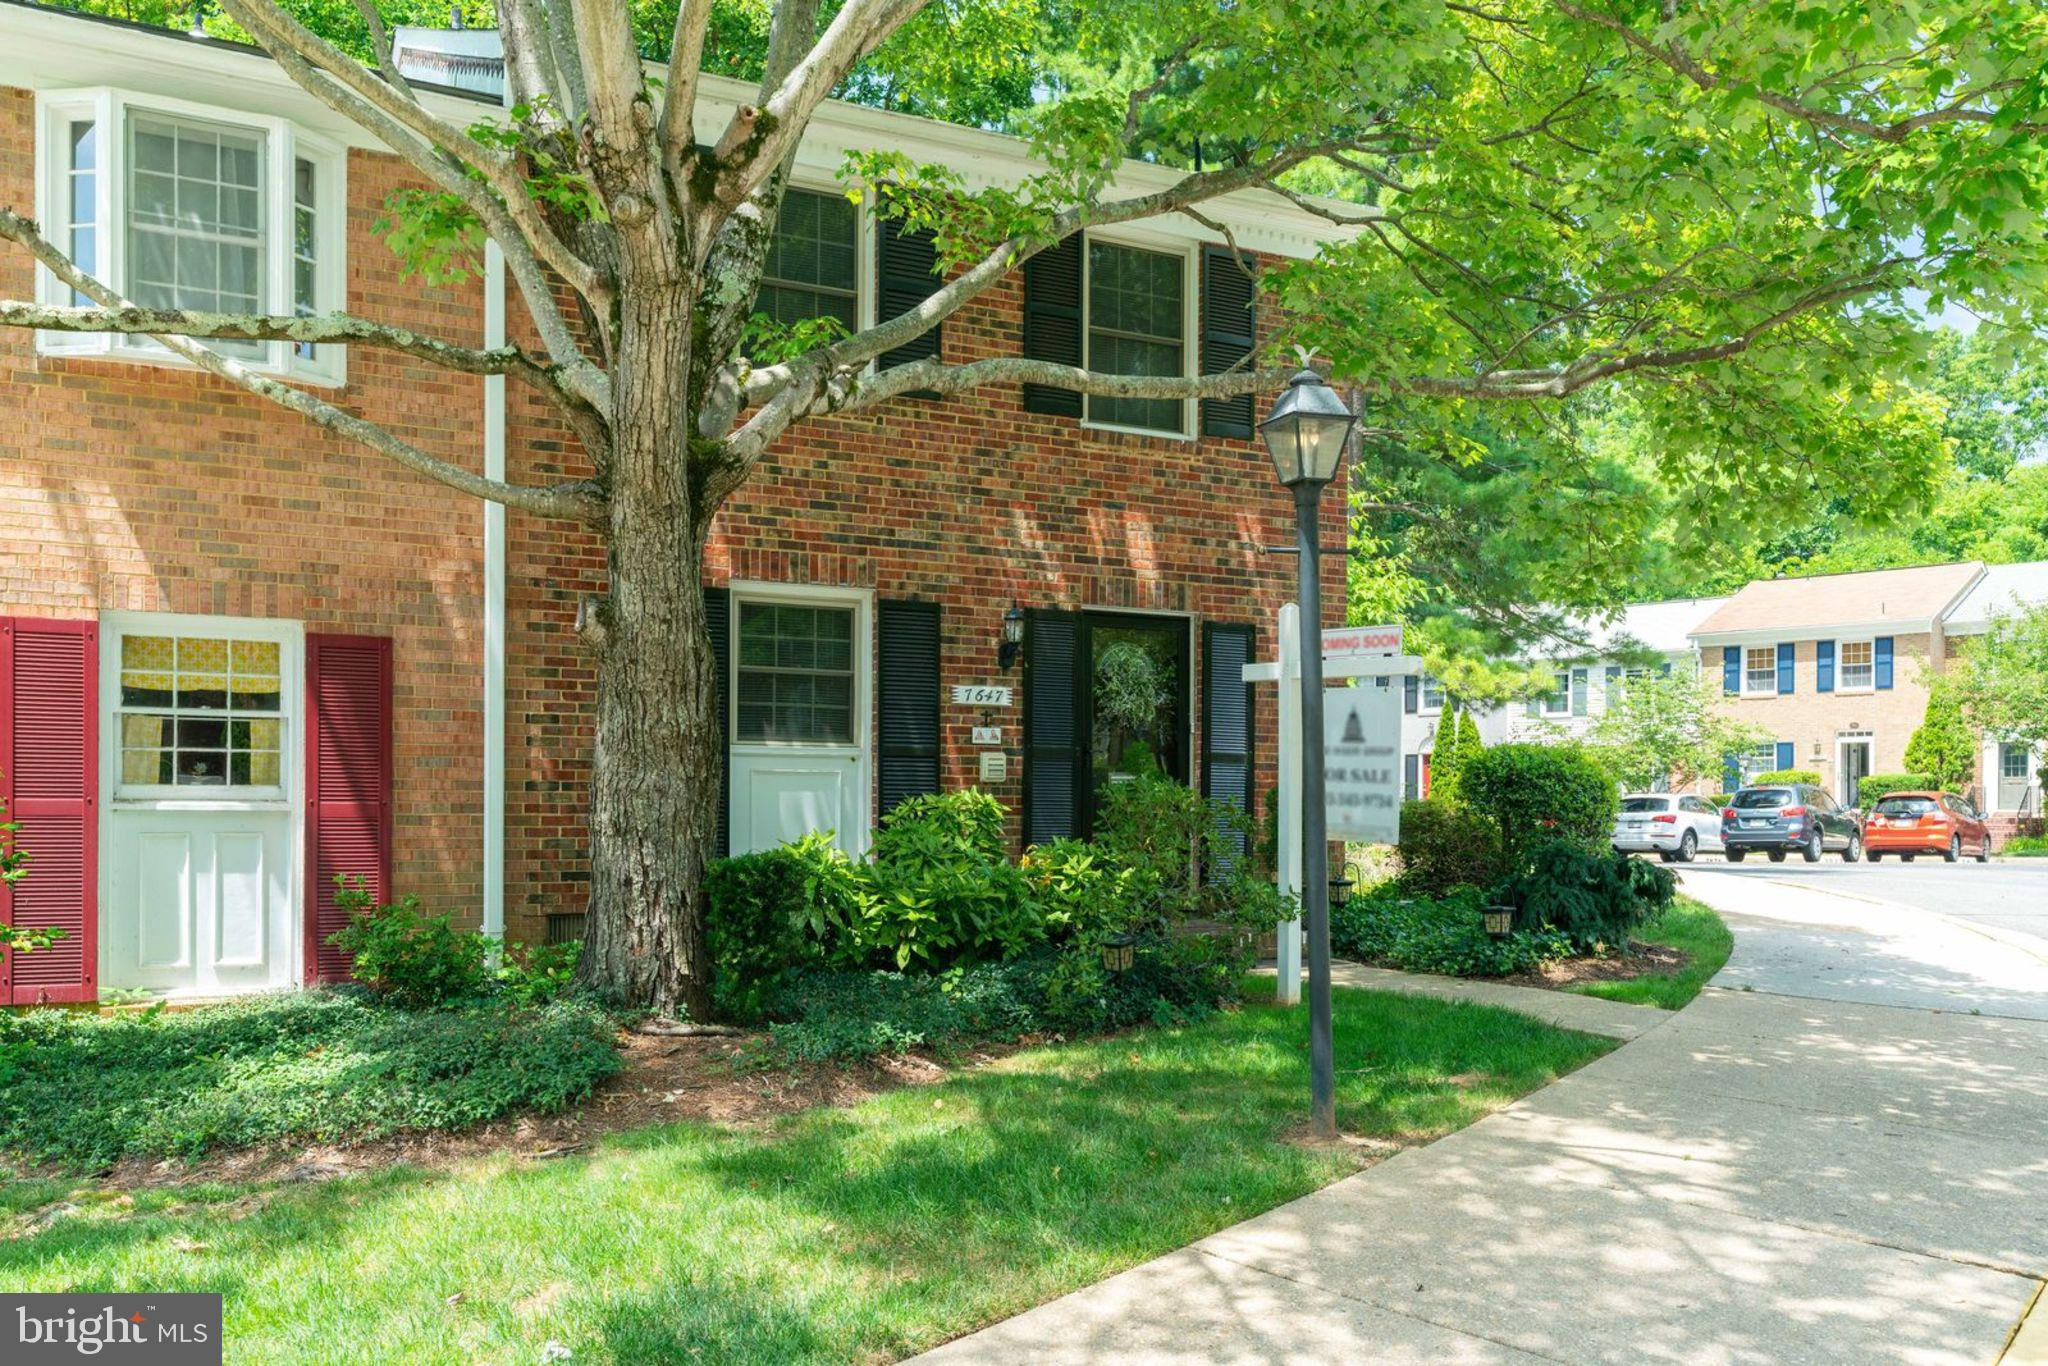 Don~t miss out on this rare find in Cardinal Square.  This spacious end-unit townhome has been completely rebuilt in 2014. Enjoy over $50K in upgrades which include a gorgeous state-of-the art kitchen with customized cabinets, granite counter top, stainless steel appliances and brand new hardwood floors and marble tiles and a big landscaped patio and fenced backyard against wooded trees. Furthermore a jacuzzi tub in the shared bathroom with a private entrance to the second bedroom, a floored attic for added storage, a live fireplace. Located, just 1 mile to I-495-395-95, Rte 286, Blue Line Metro, Springfield Town Center, restaurants - this unit is perfect for any commute! This won't last long - schedule a showing today! Condo fee includes a community pool and hot tub